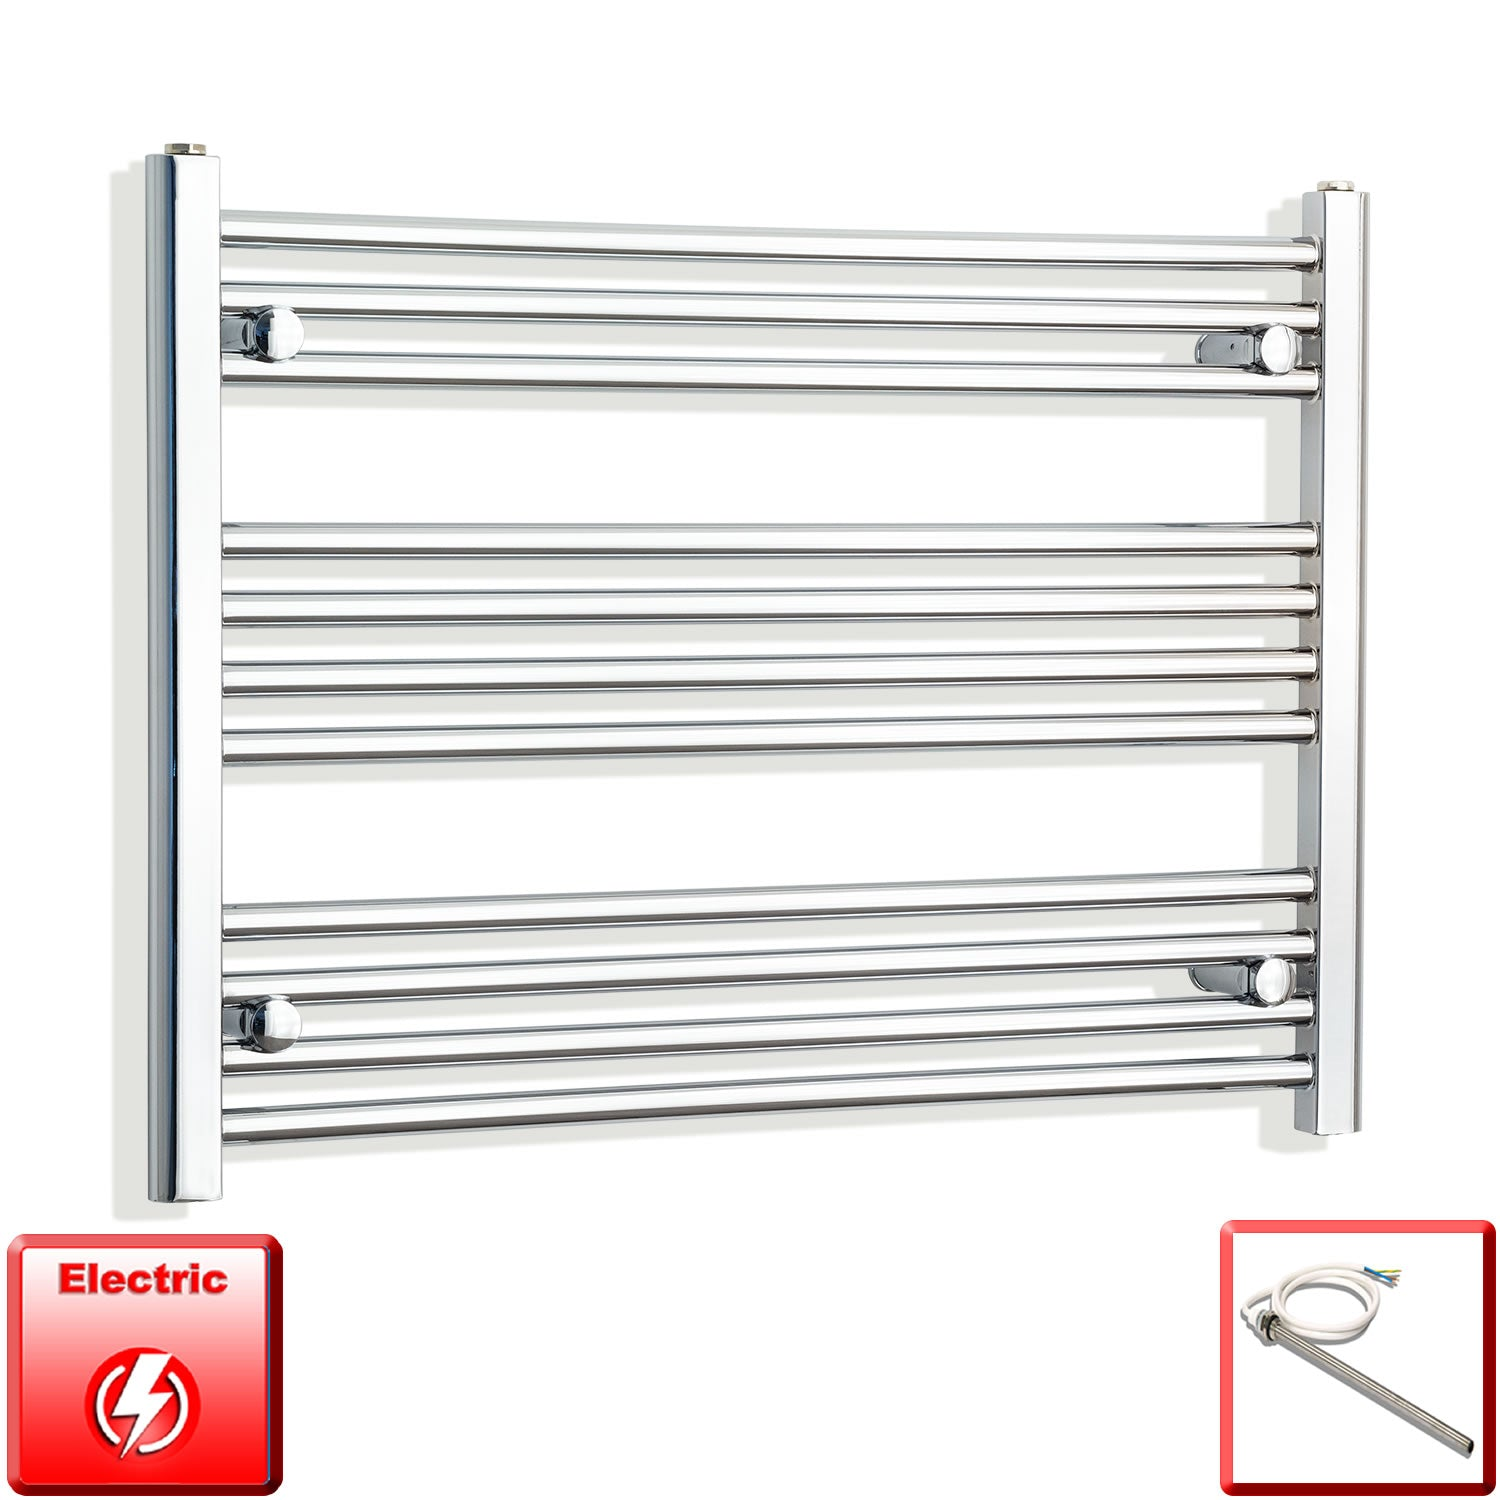 850mm Wide 600mm High Pre-Filled Chrome Electric Towel Rail Radiator With Single Heat Element